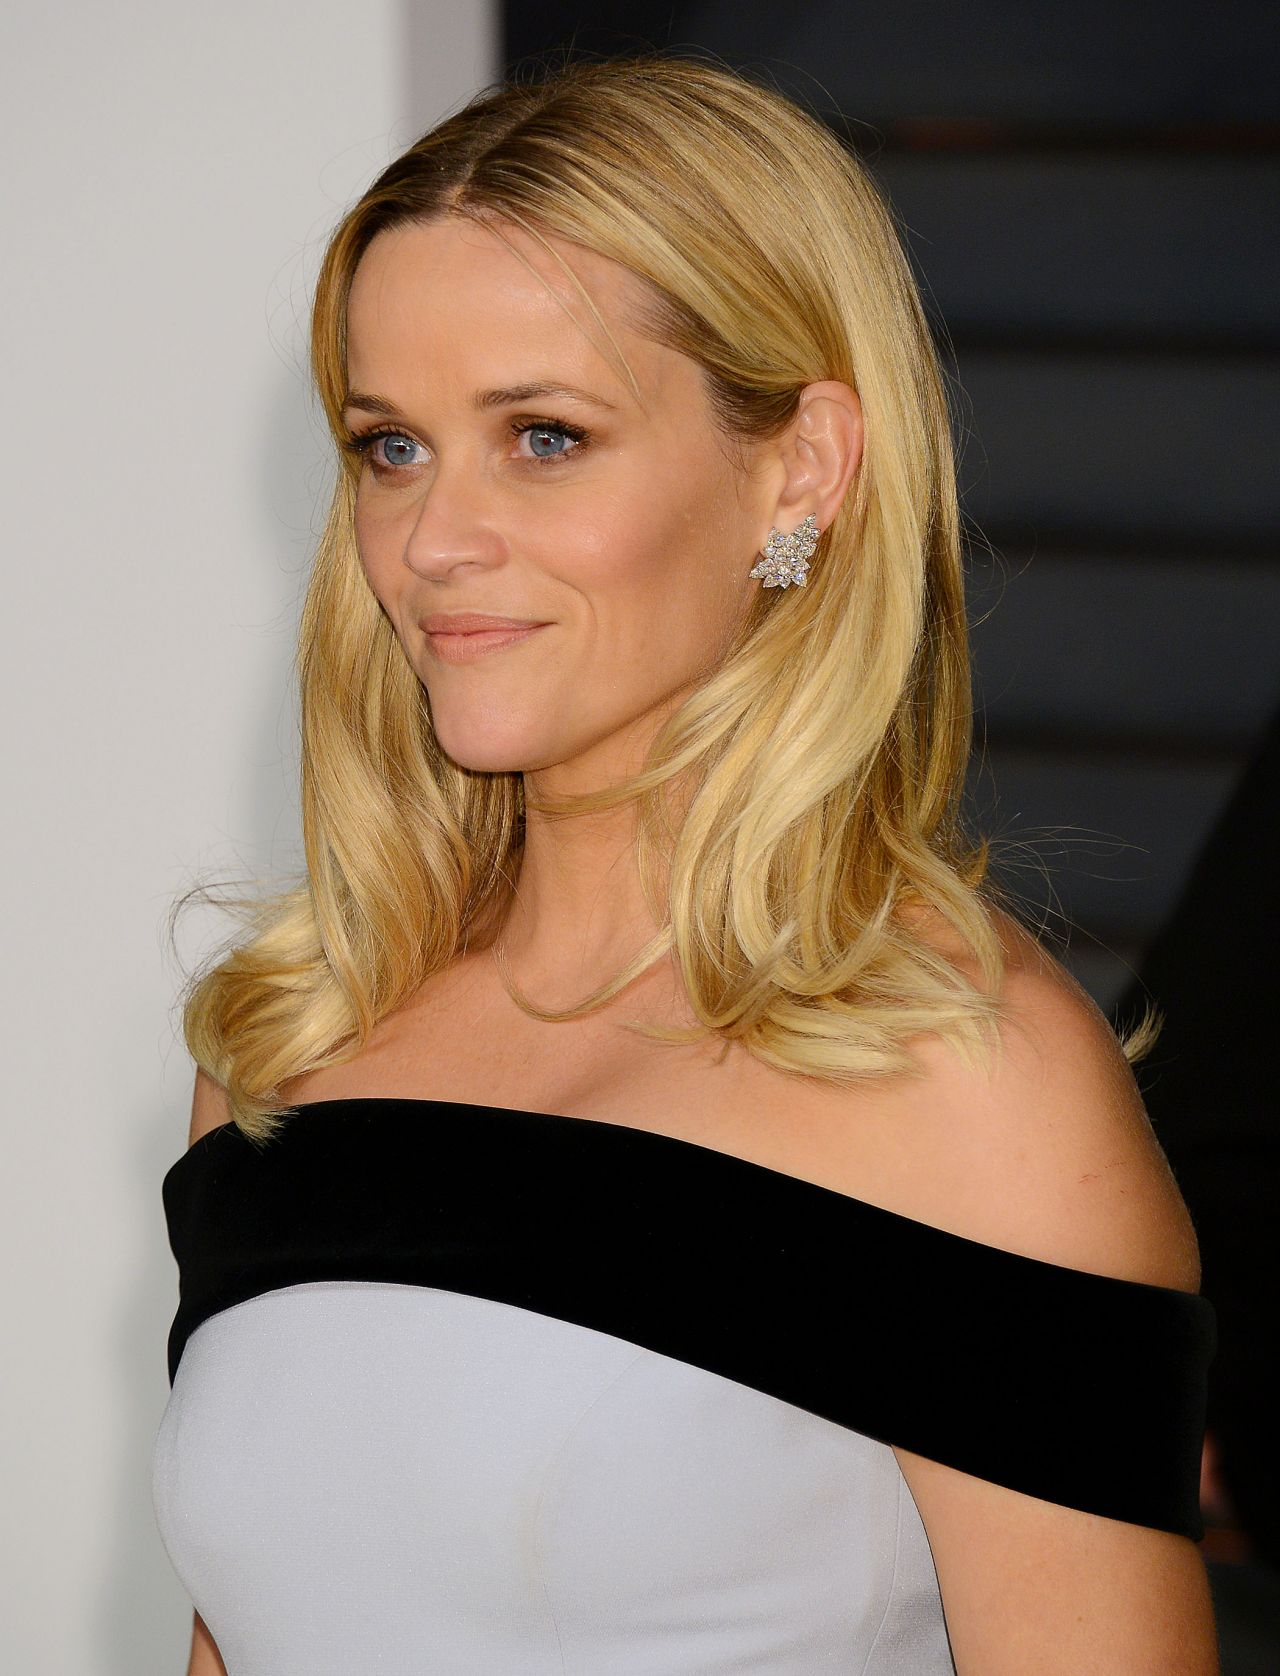 Reese Witherspoon – 2015 Vanity Fair Oscar Party in Hollywood Reese Witherspoon